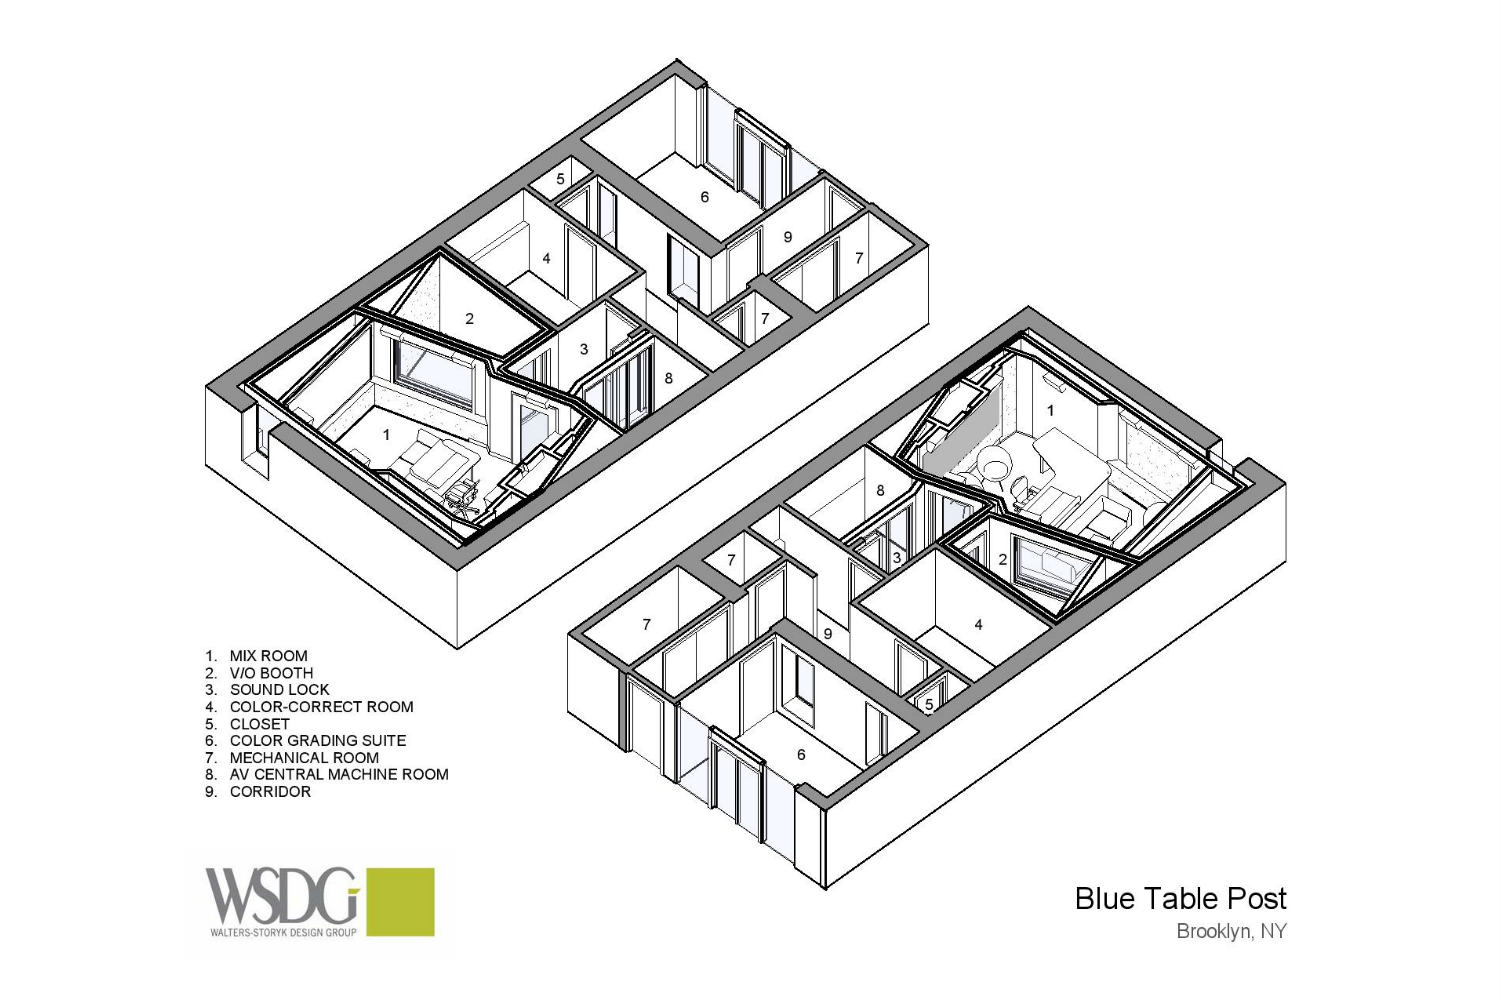 Blue Table Post A/V Post Production House Presentation Drawing 1 designed by WSDG (Walters-Storyk Design Group)